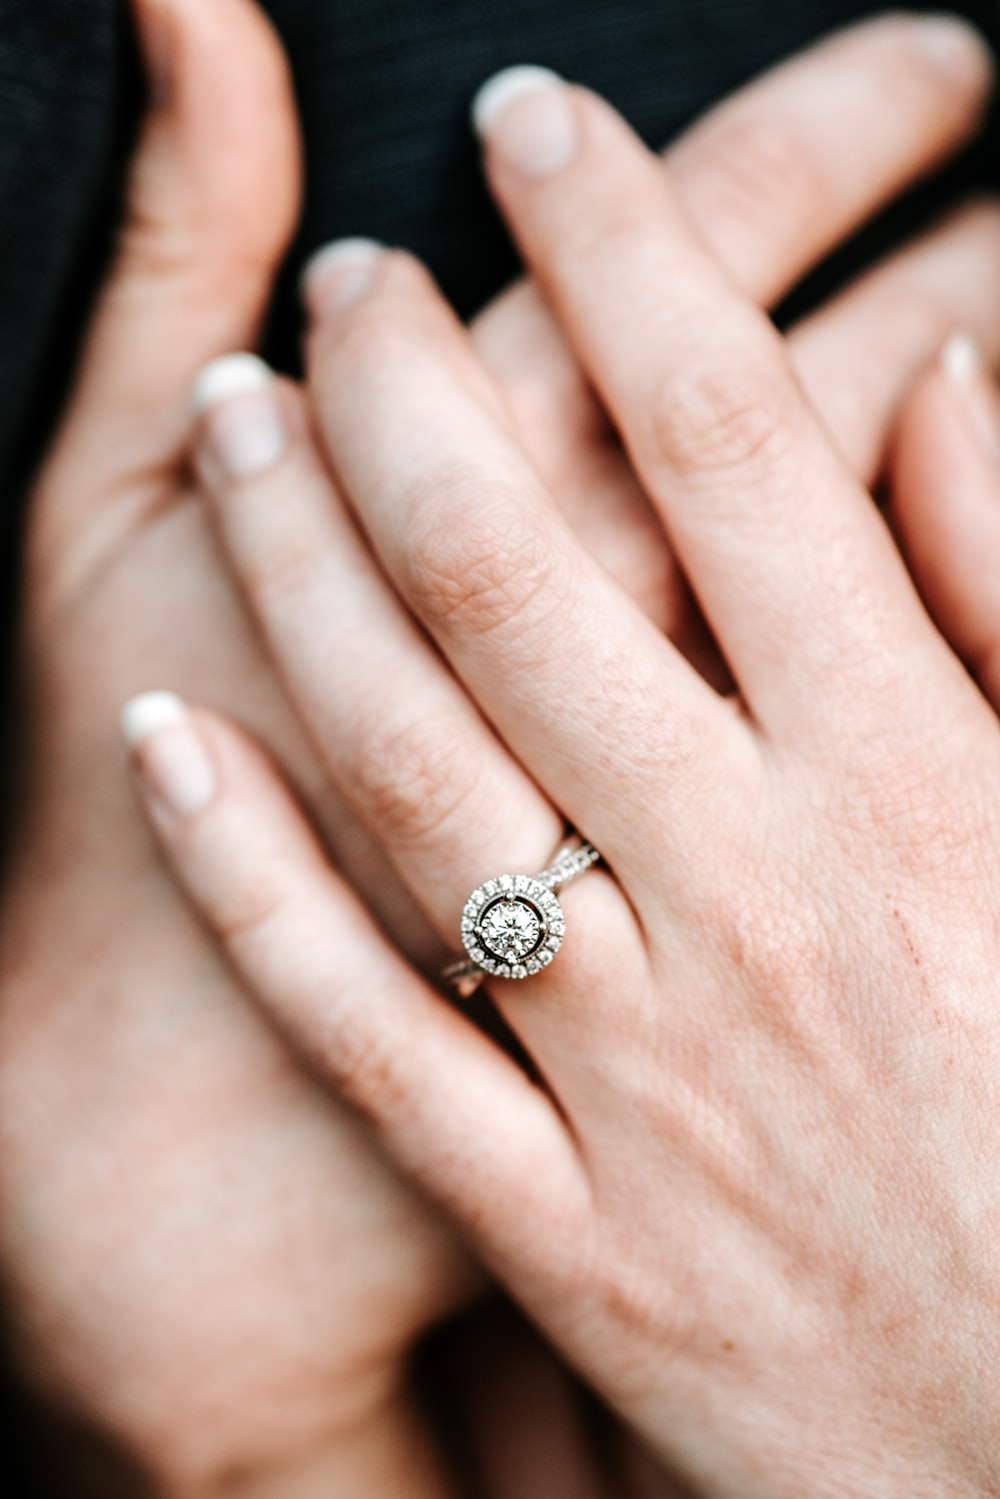 person wearing silver-colored ring